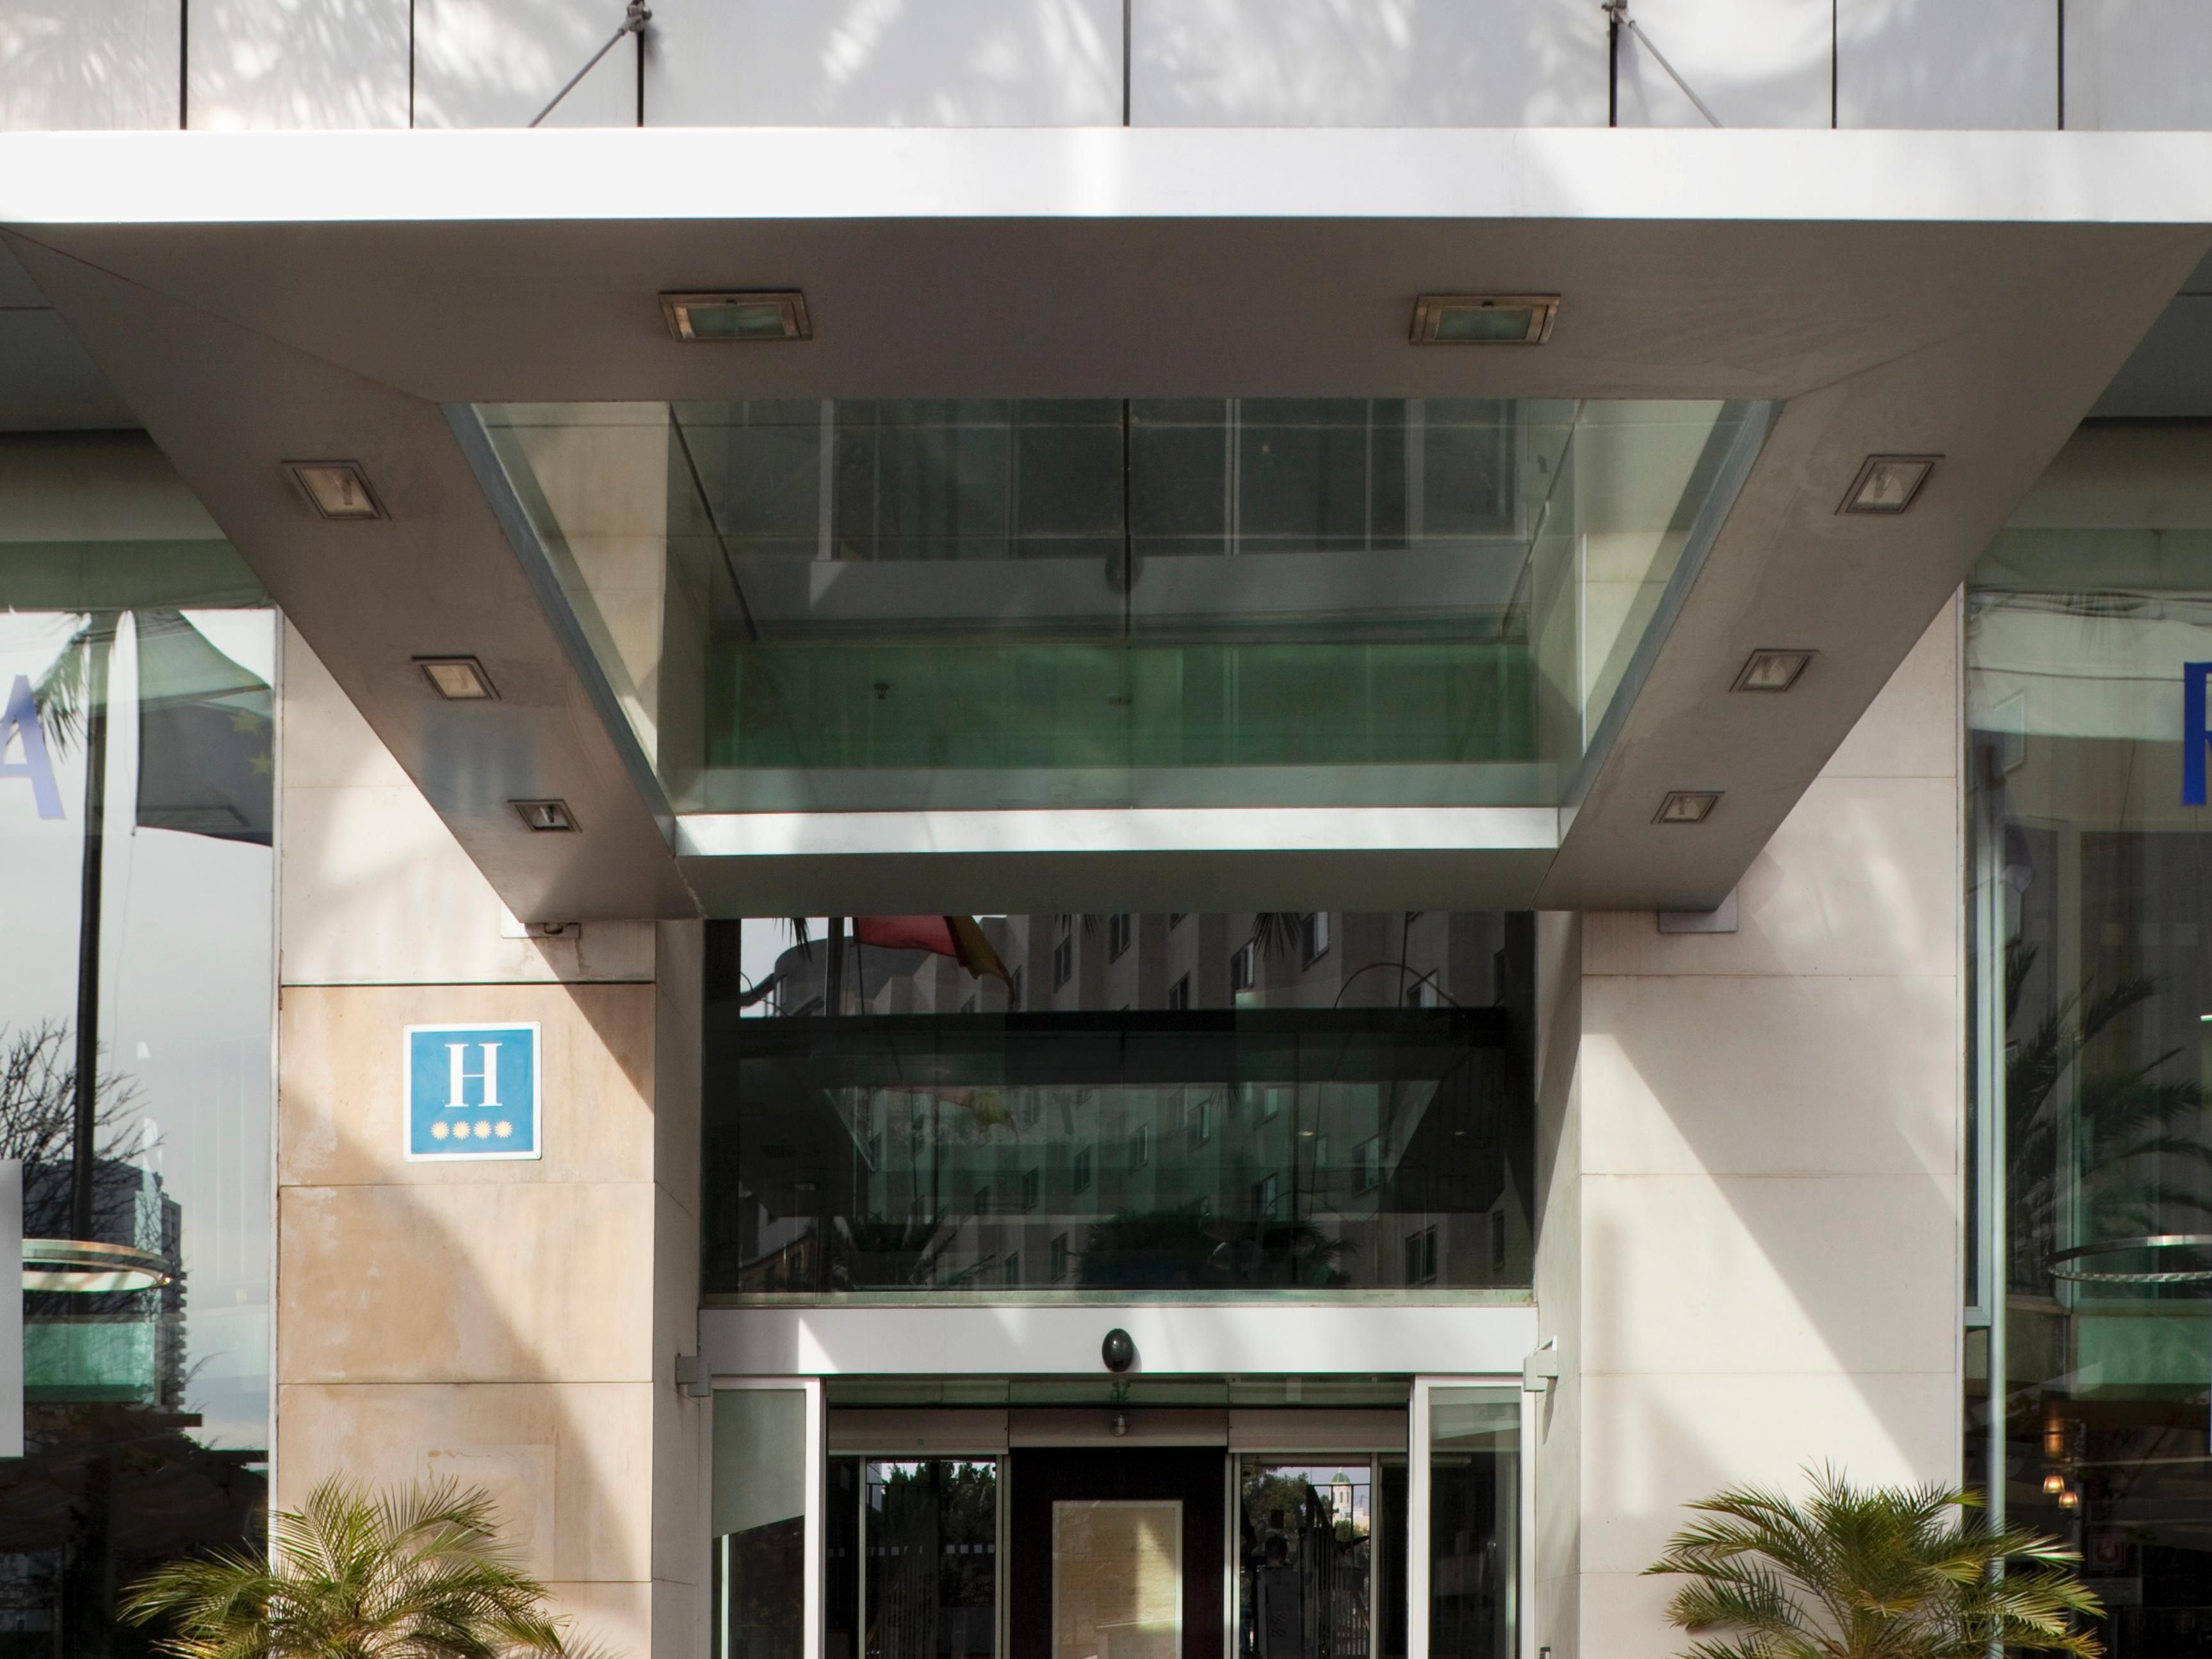 Exterior Hotel's entrance